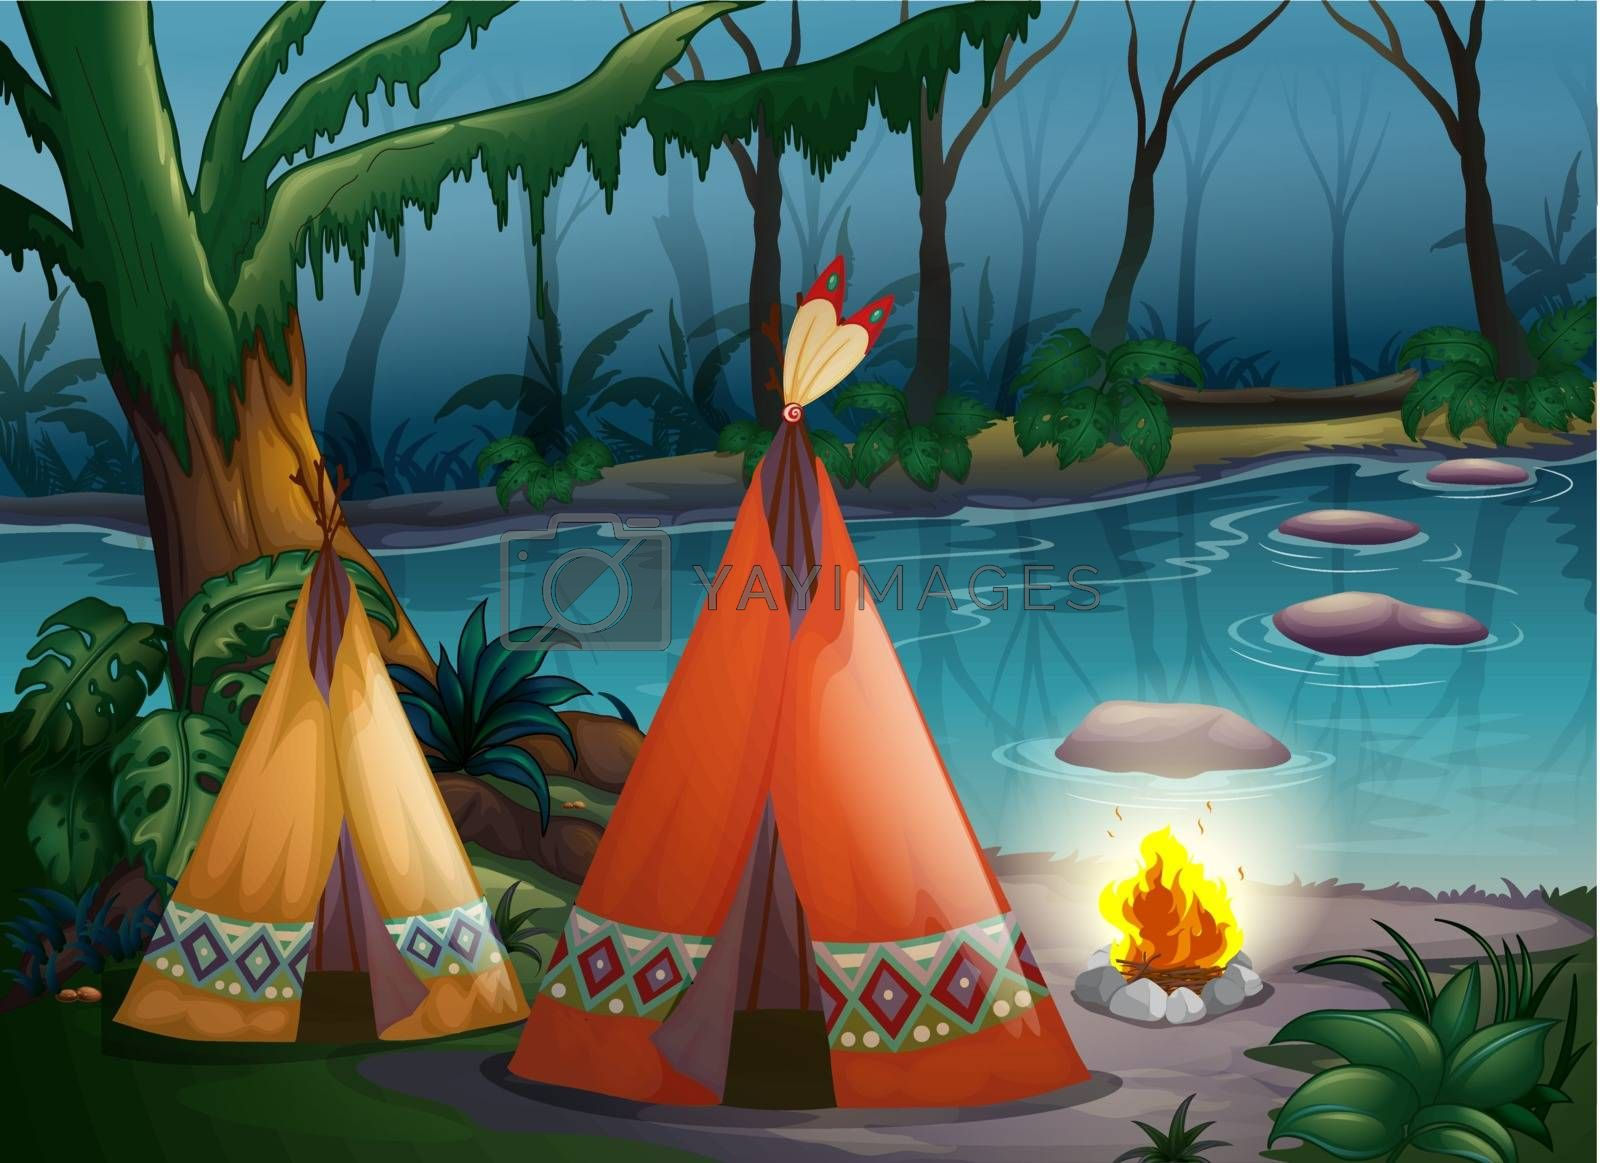 Illustration of traditional indian tents in the woods near a river